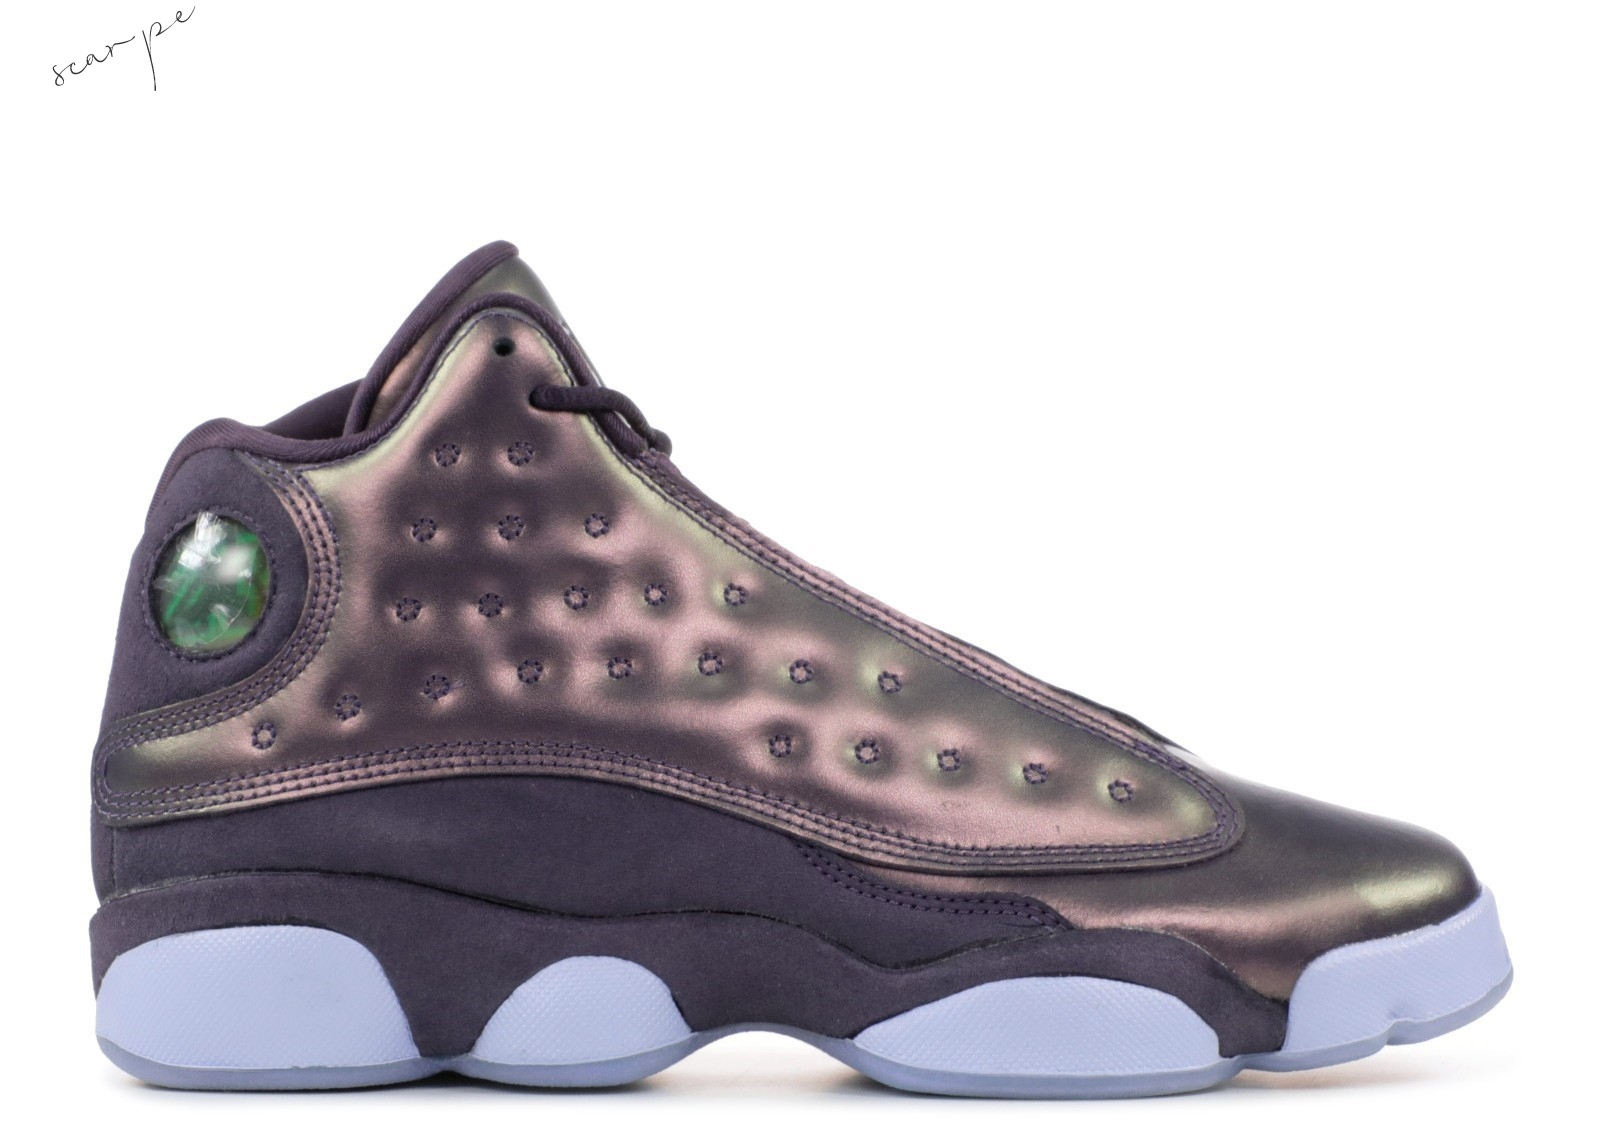 "Vendite Air Jordan 13 Retro Prem Hc (Gs) ""Buio Raisin"" Buio Raisin (aa1236-520) Scarpe Online"